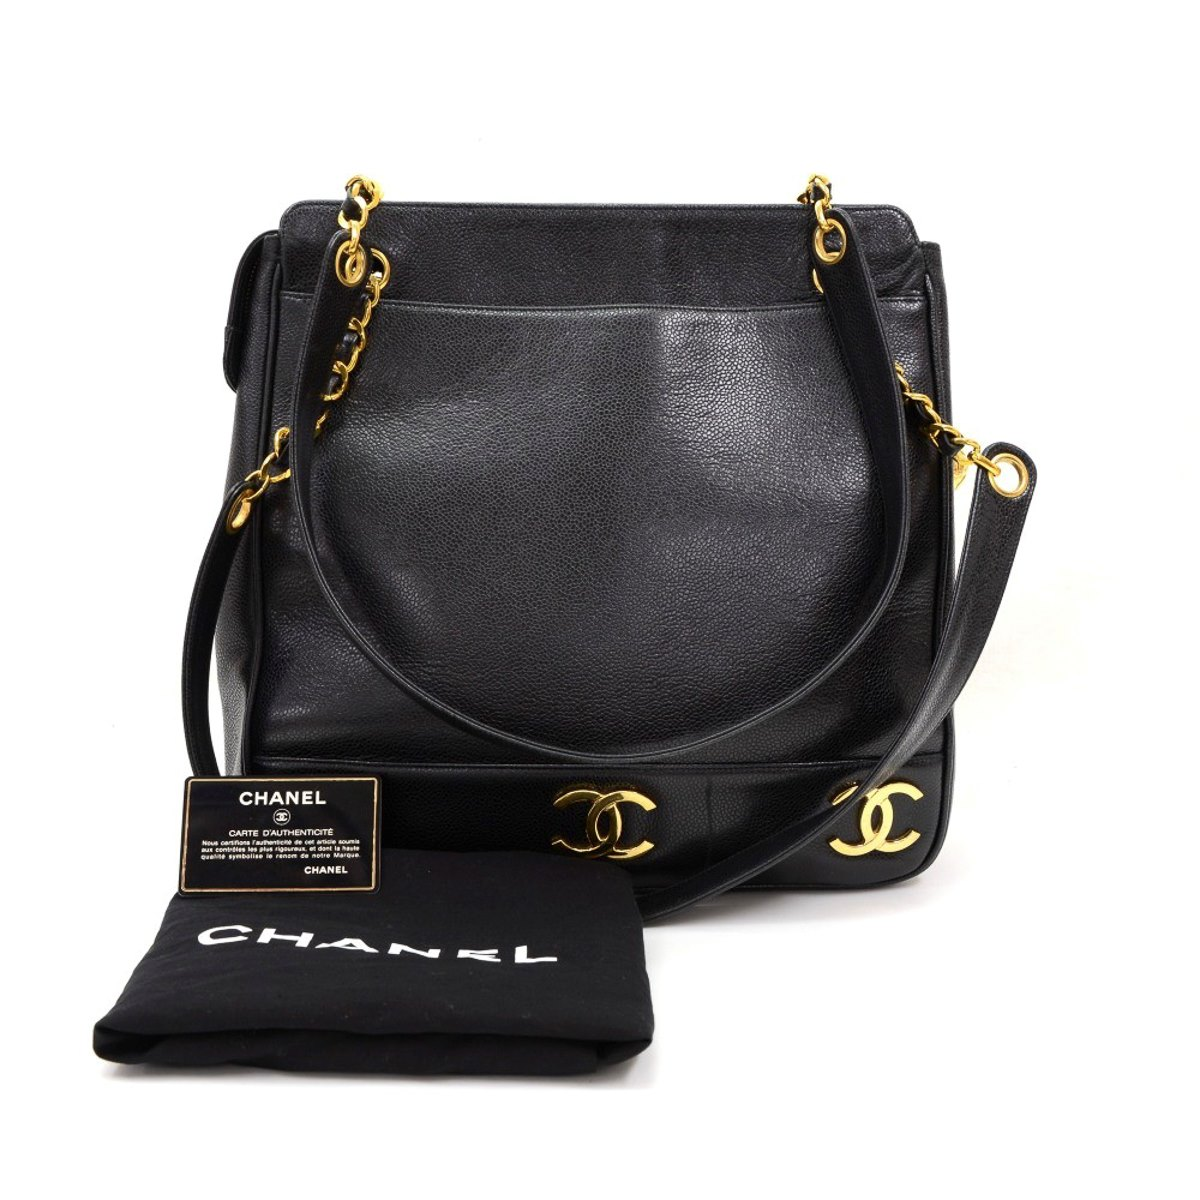 chanel timeless shoulder bag 1991 hb239 second hand handbags. Black Bedroom Furniture Sets. Home Design Ideas